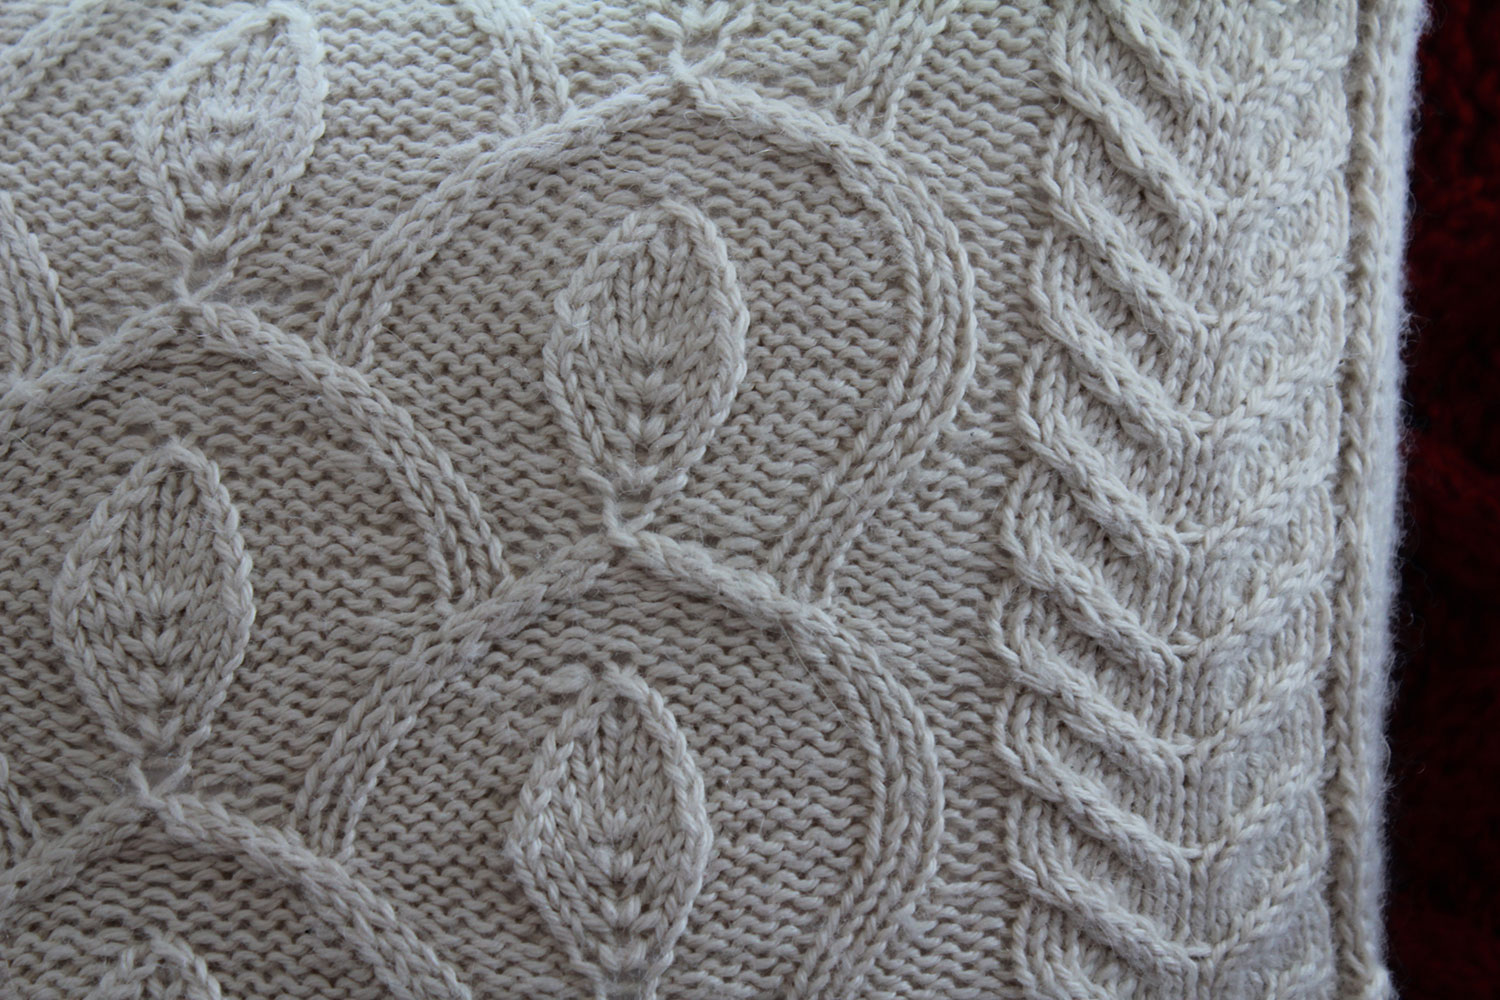 arcade-pillow-detail.jpg